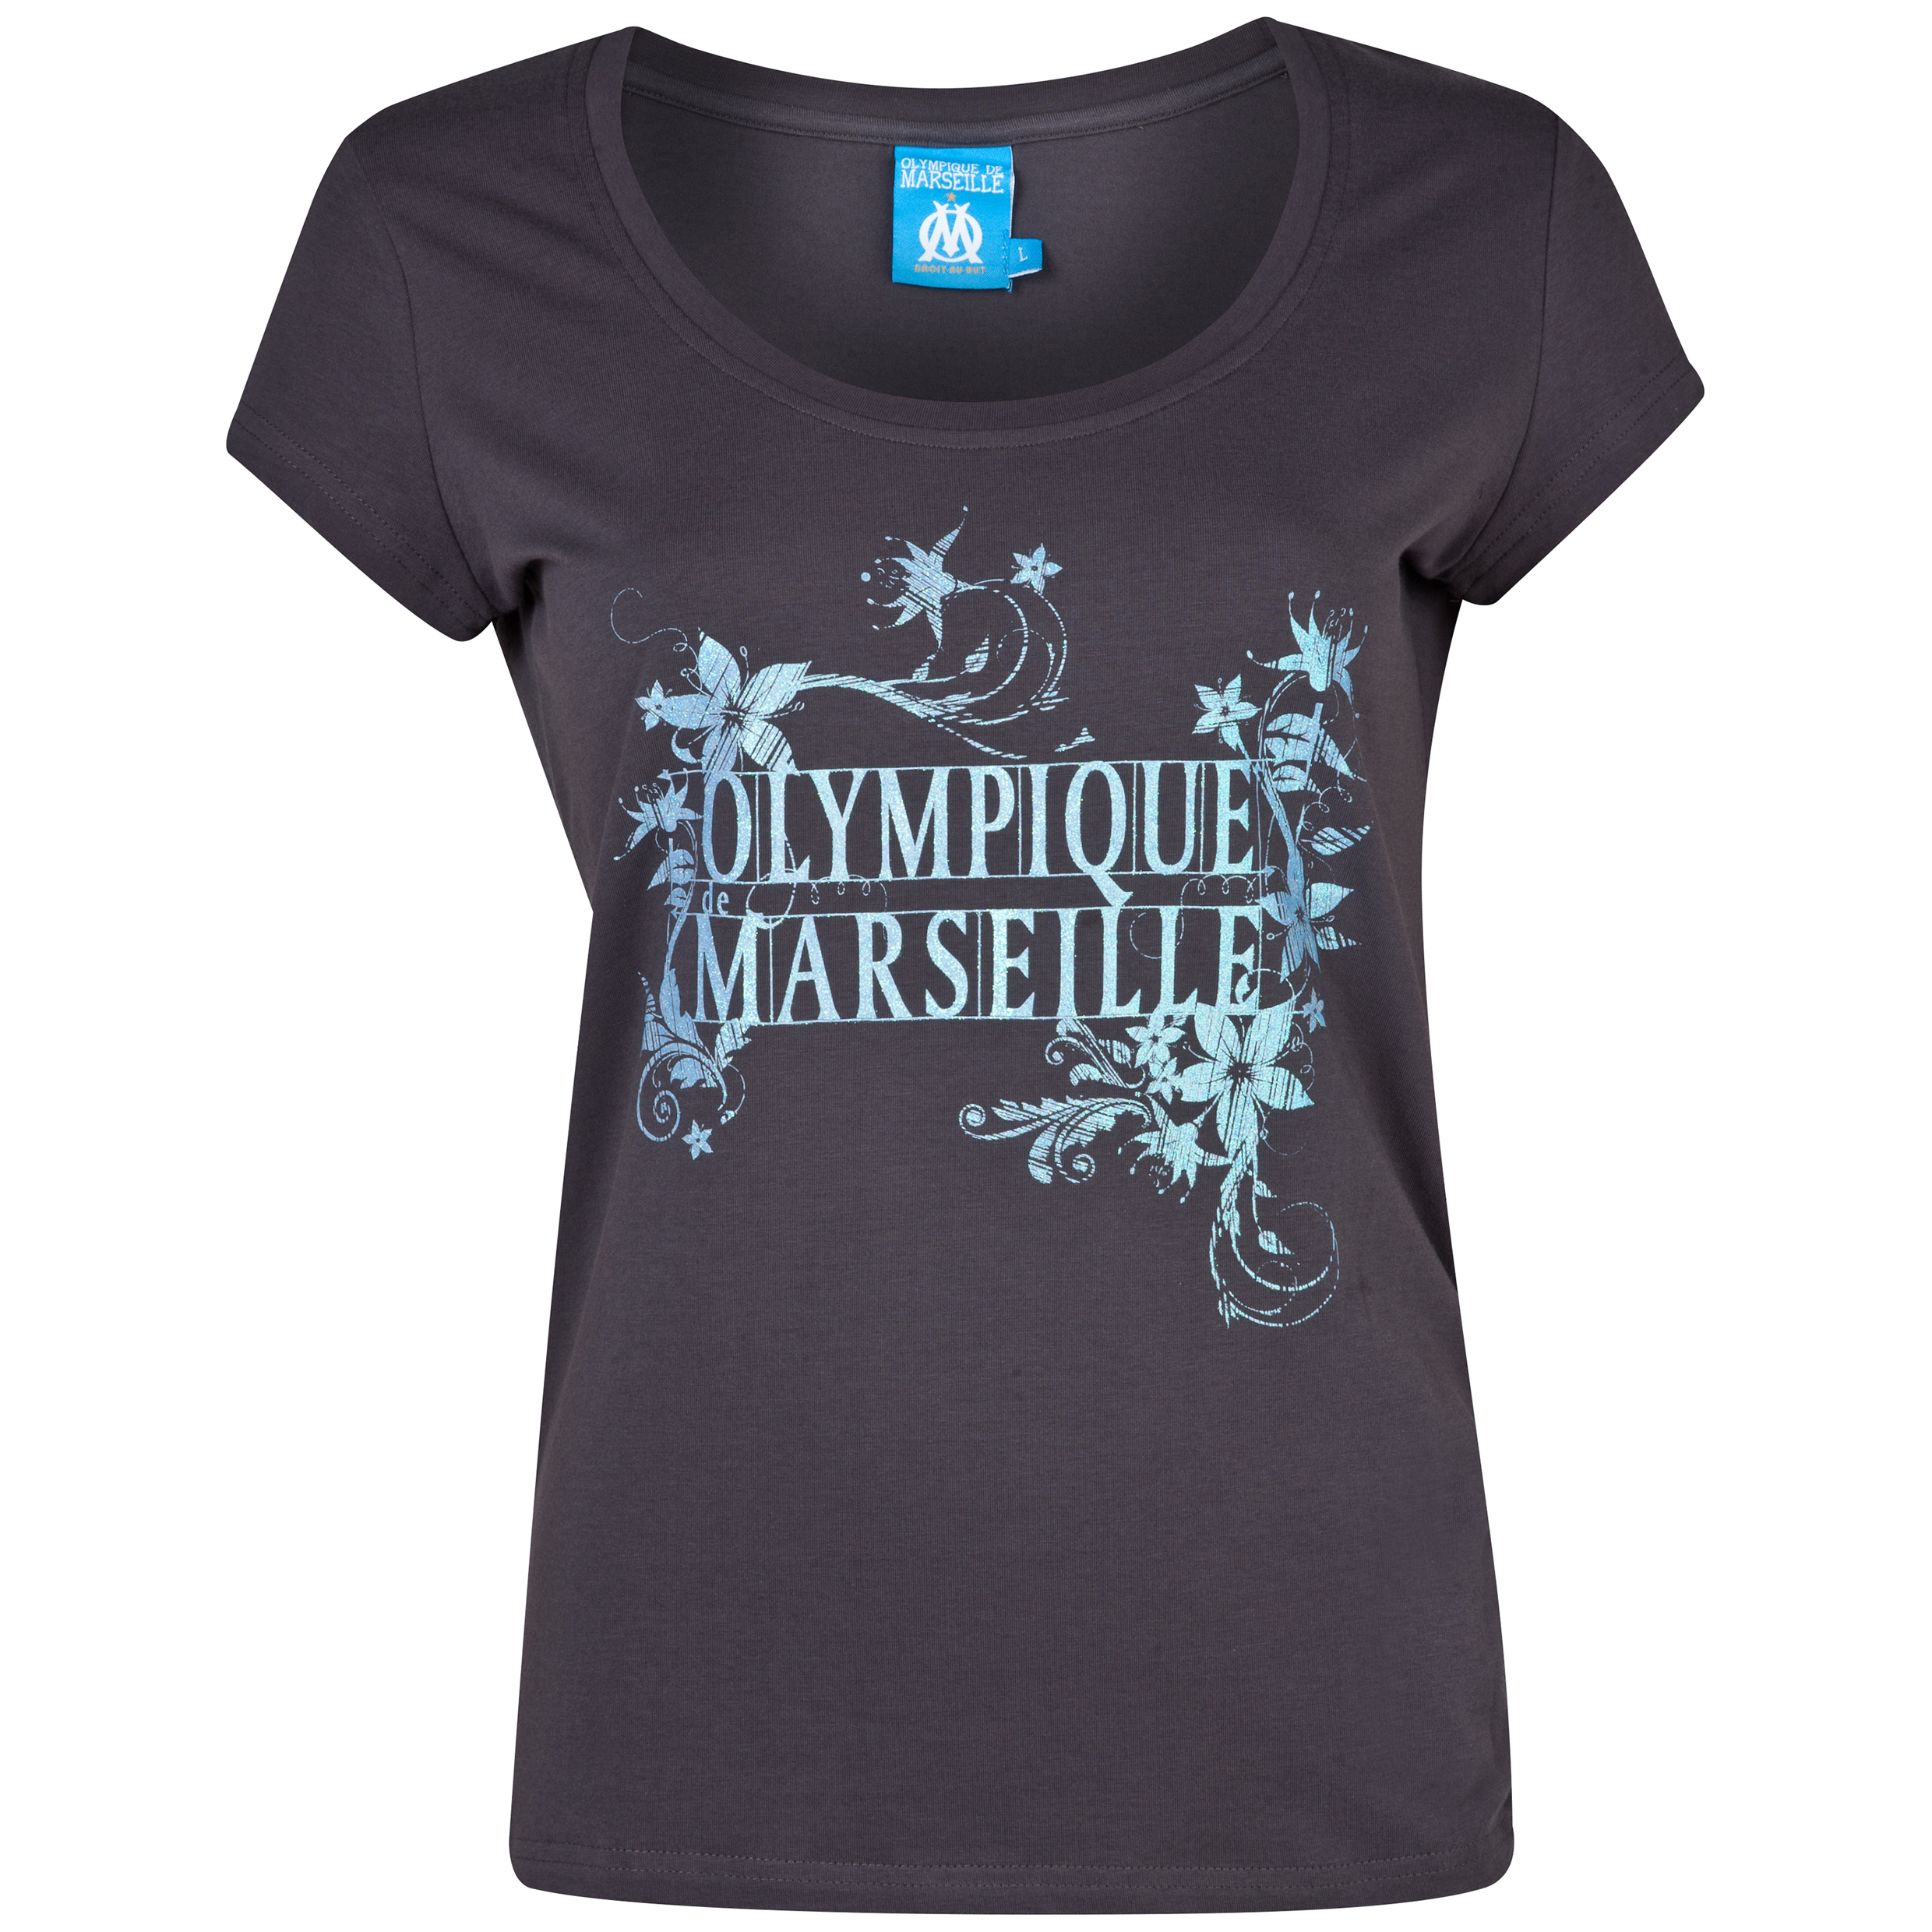 Olympique de Marseille OM Olympique T-Shirt - Womens Grey